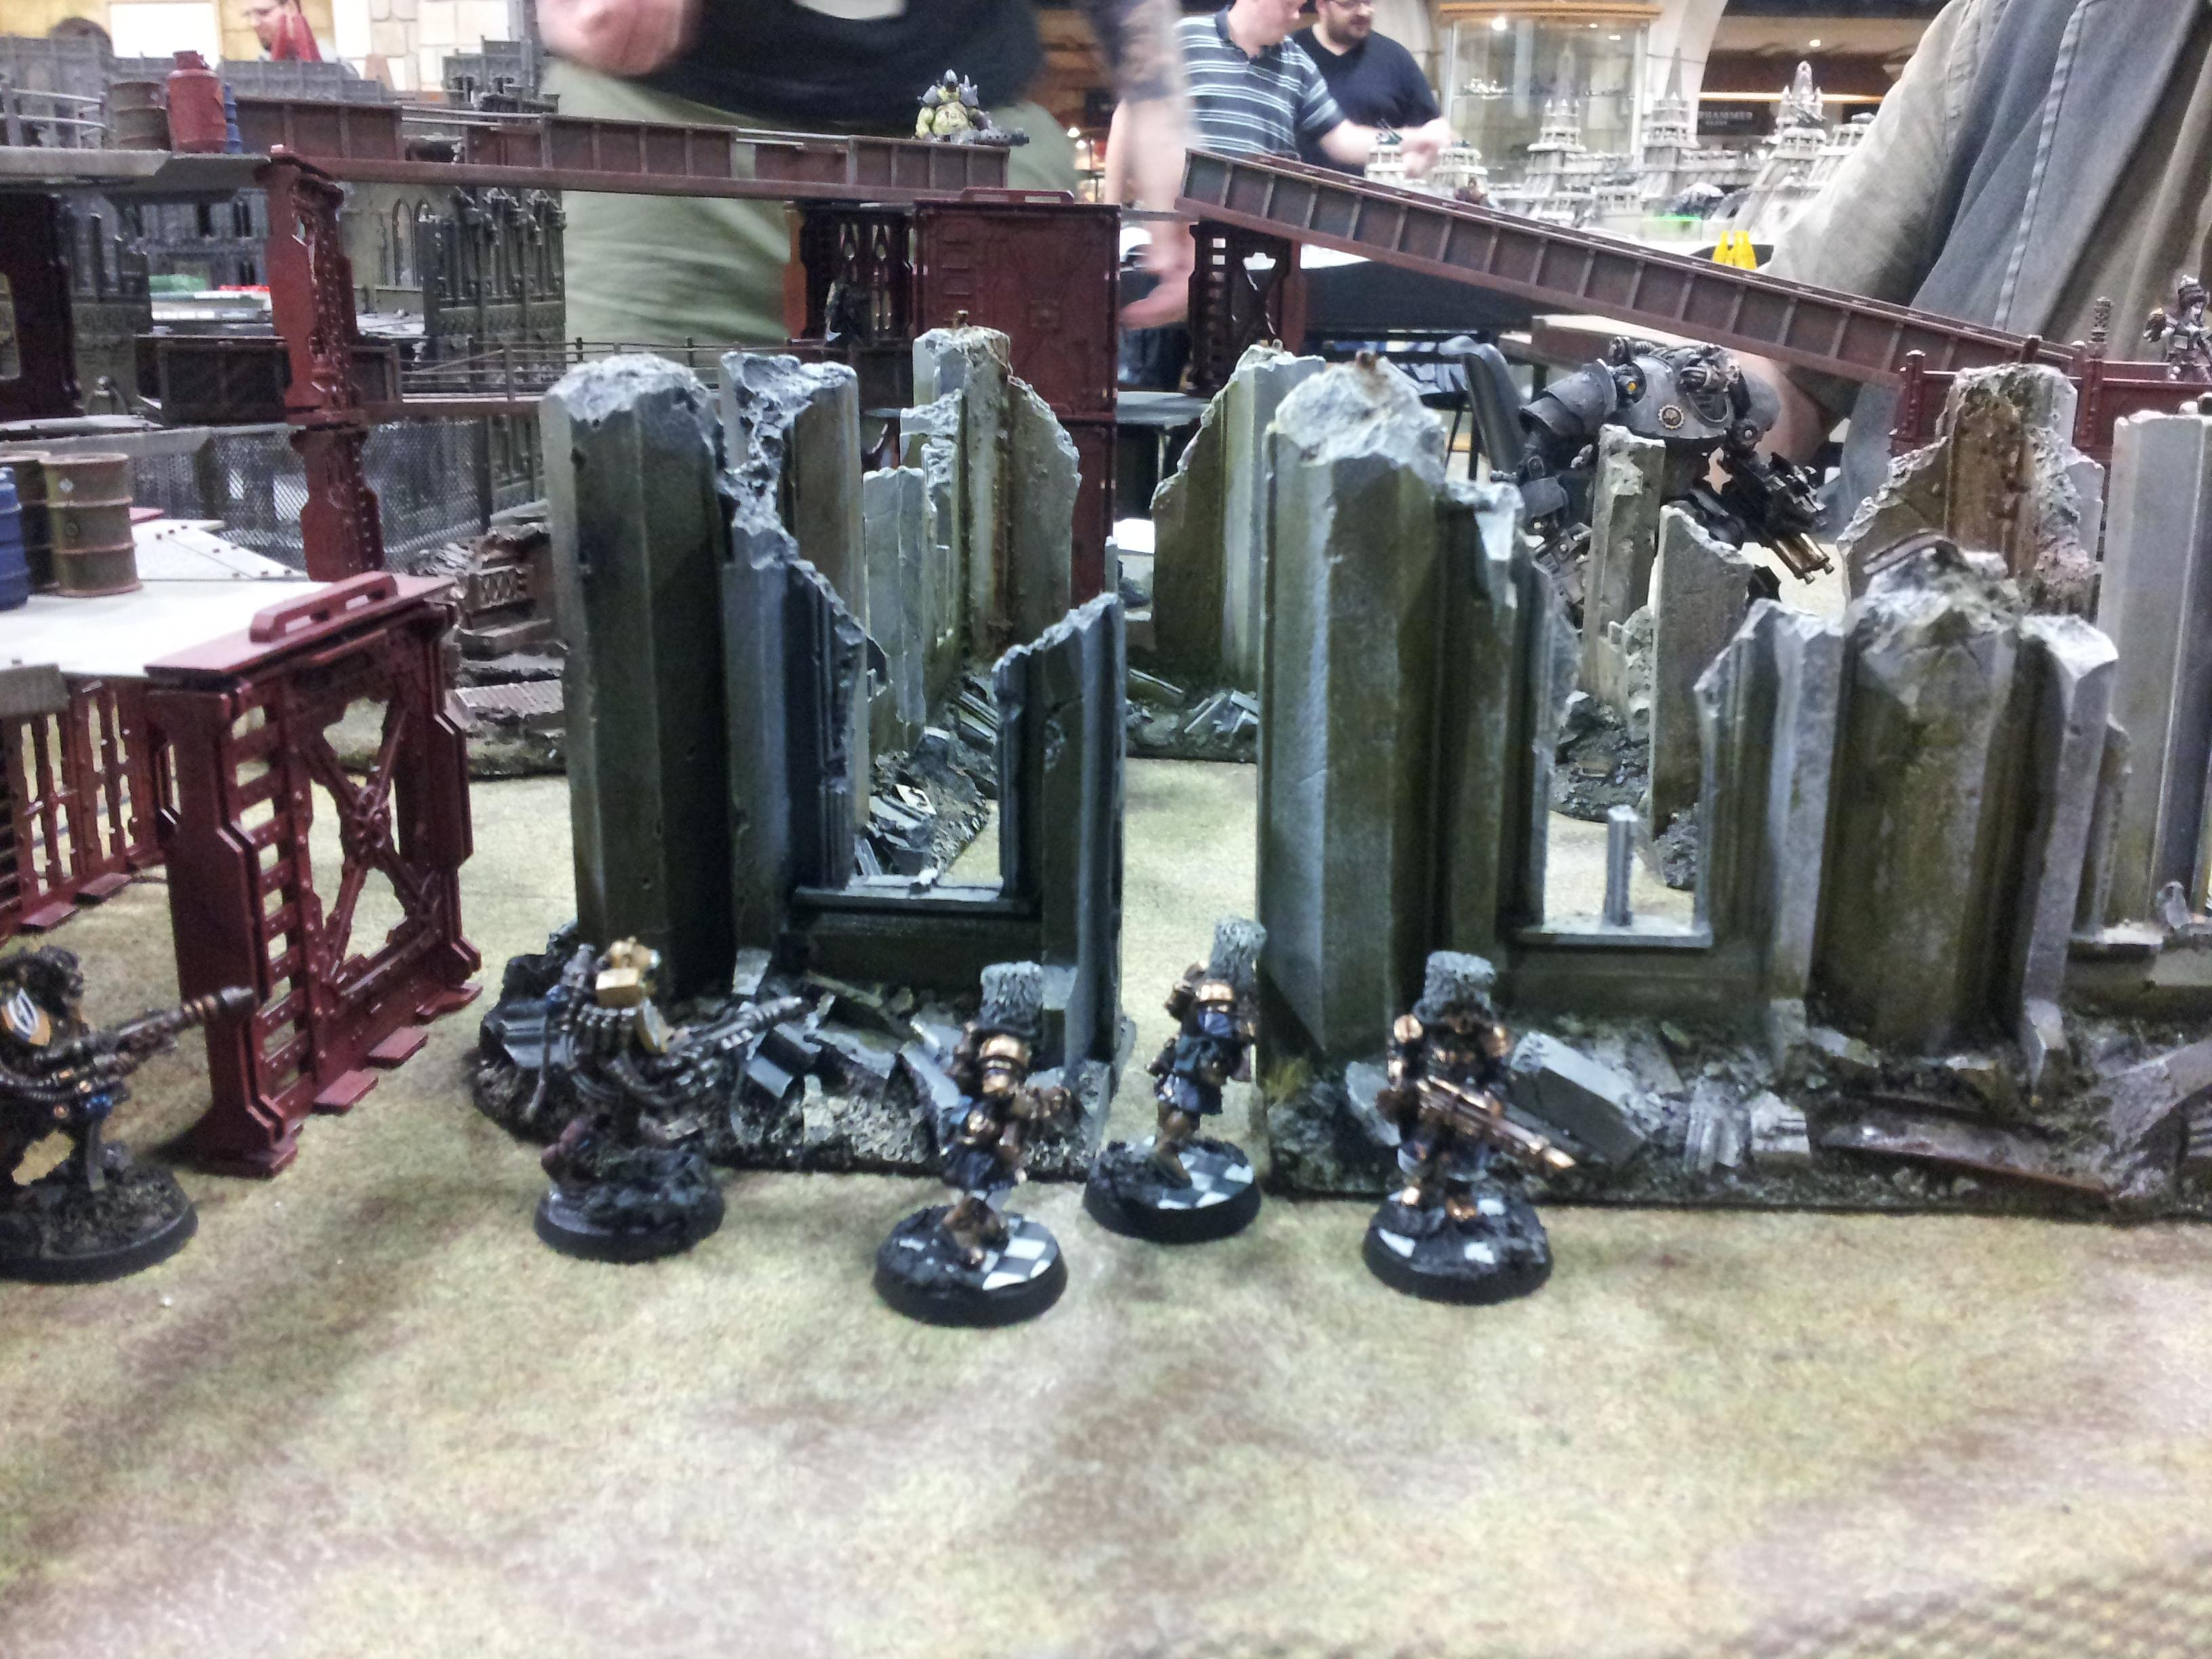 =][=munda, Blanche, Bounty Hunters, Bruticus, Ghostflame, Henry South, Inq28, Inquisitor, Mechanicus, Mutant